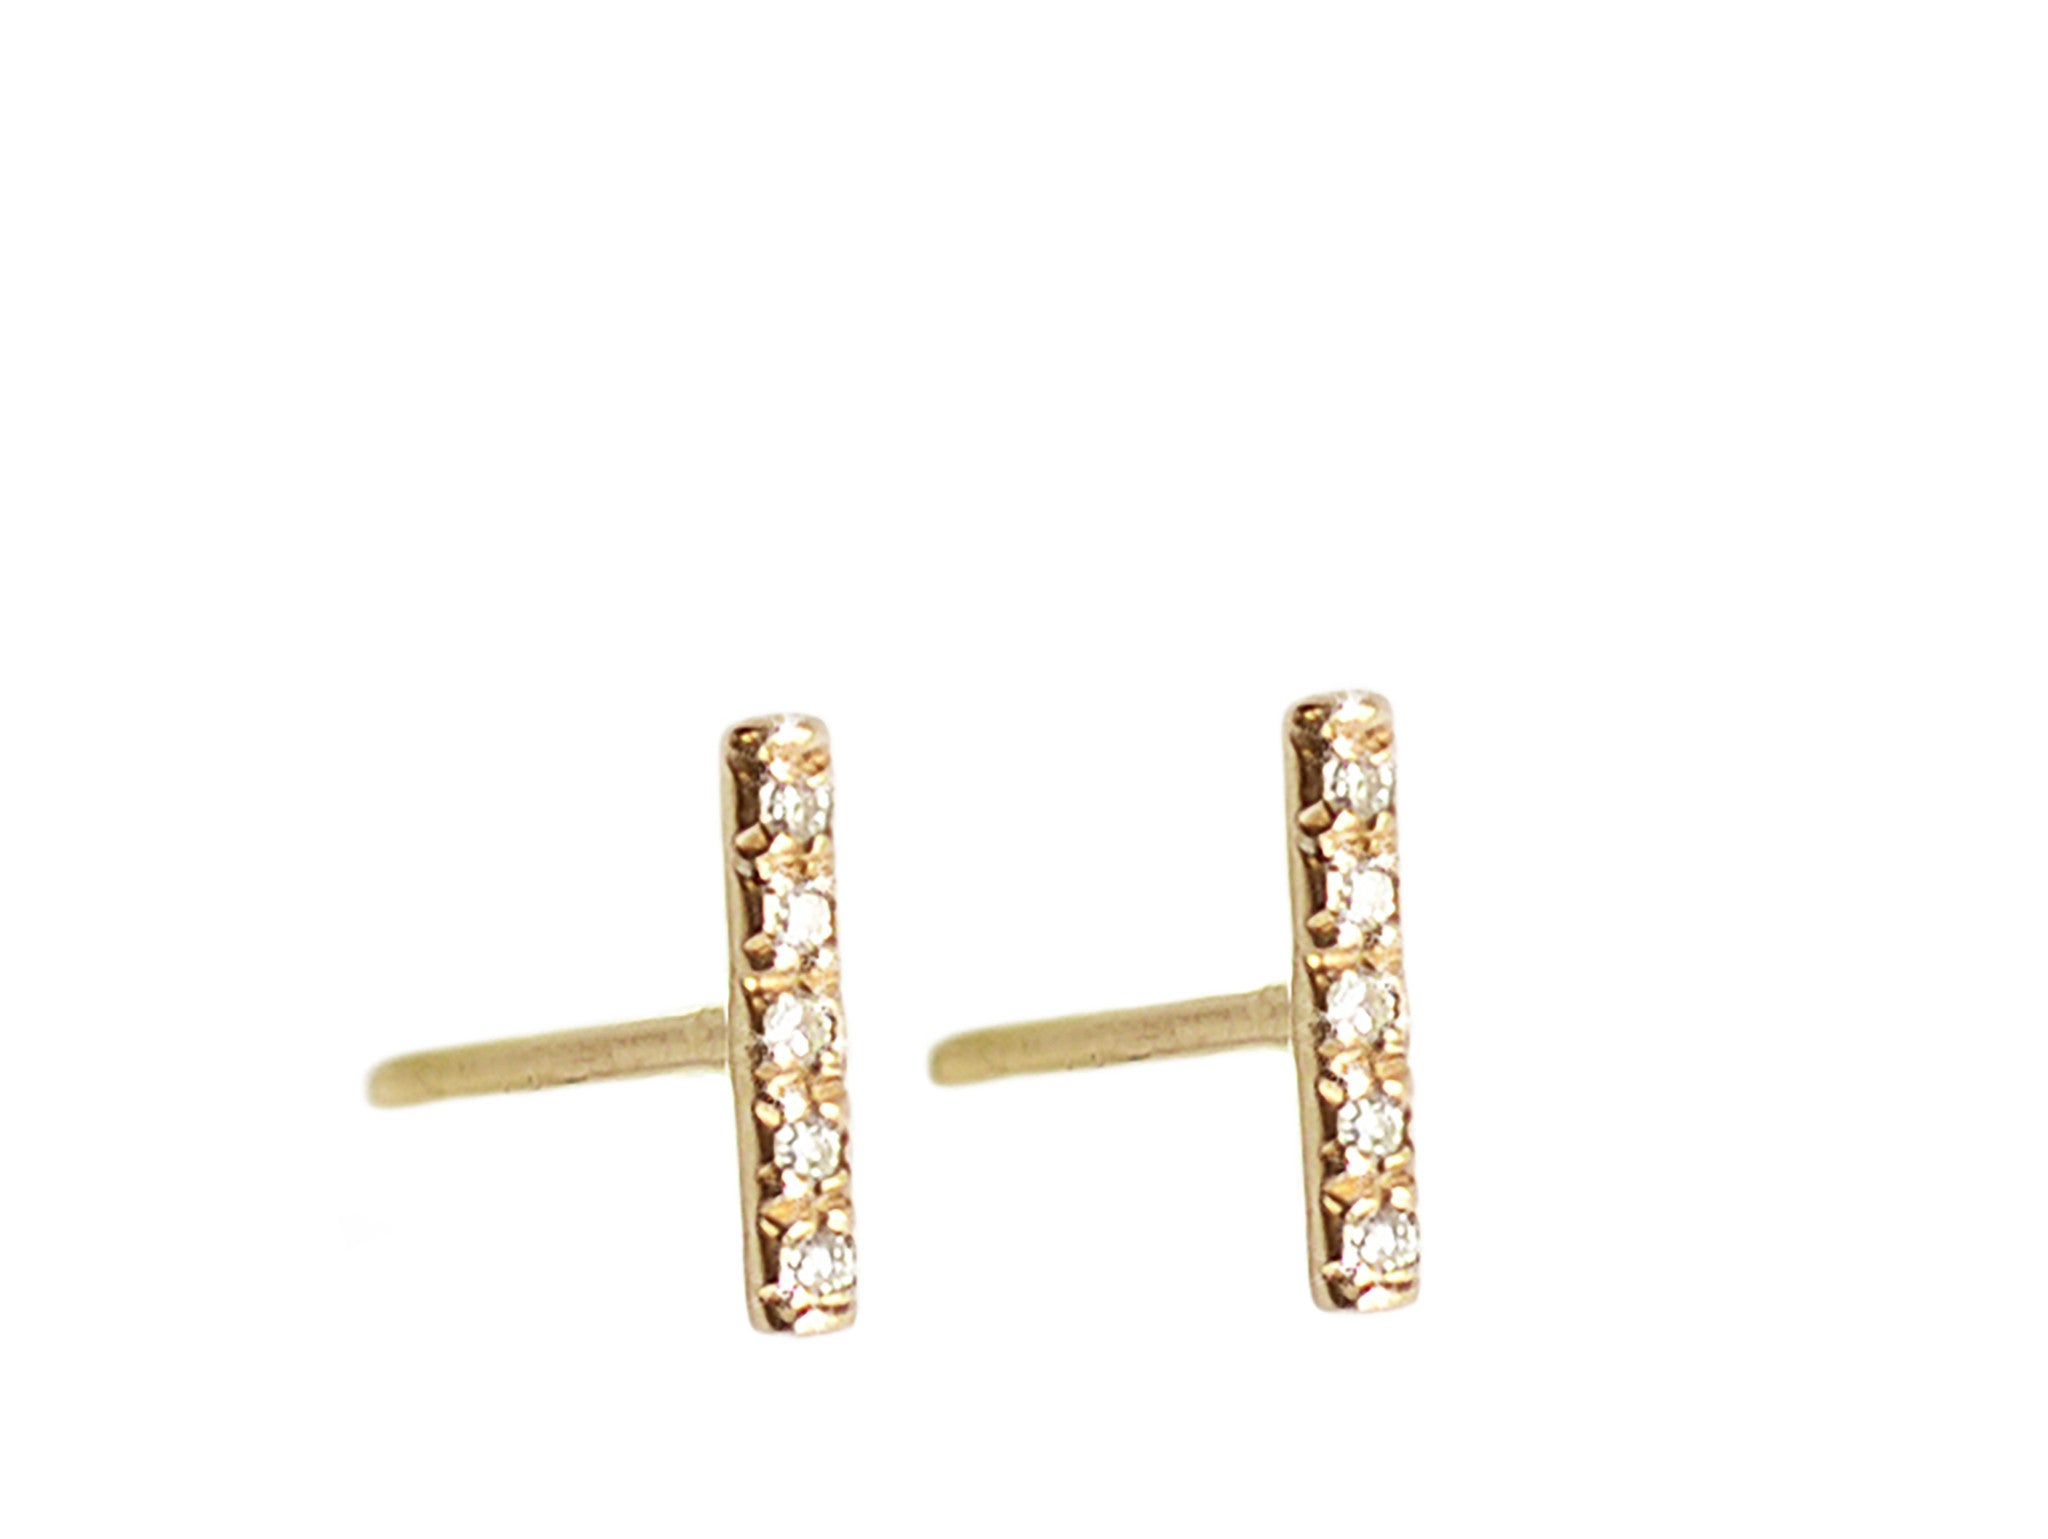 Micro Pave 5 Five Diamonds Line Bar Stud Earrings Wendy Nichol Fine Jewelry Designer Simple Delicate Studs solid 14k Gold Yellow Rose White Sterling Silver Black Diamonds White Diamonds Handmade in NYC New York City simple delicate diamonds diamond stud First Second Third Ear Piercing Snug Helix Cartilage Diamond staple stud earring